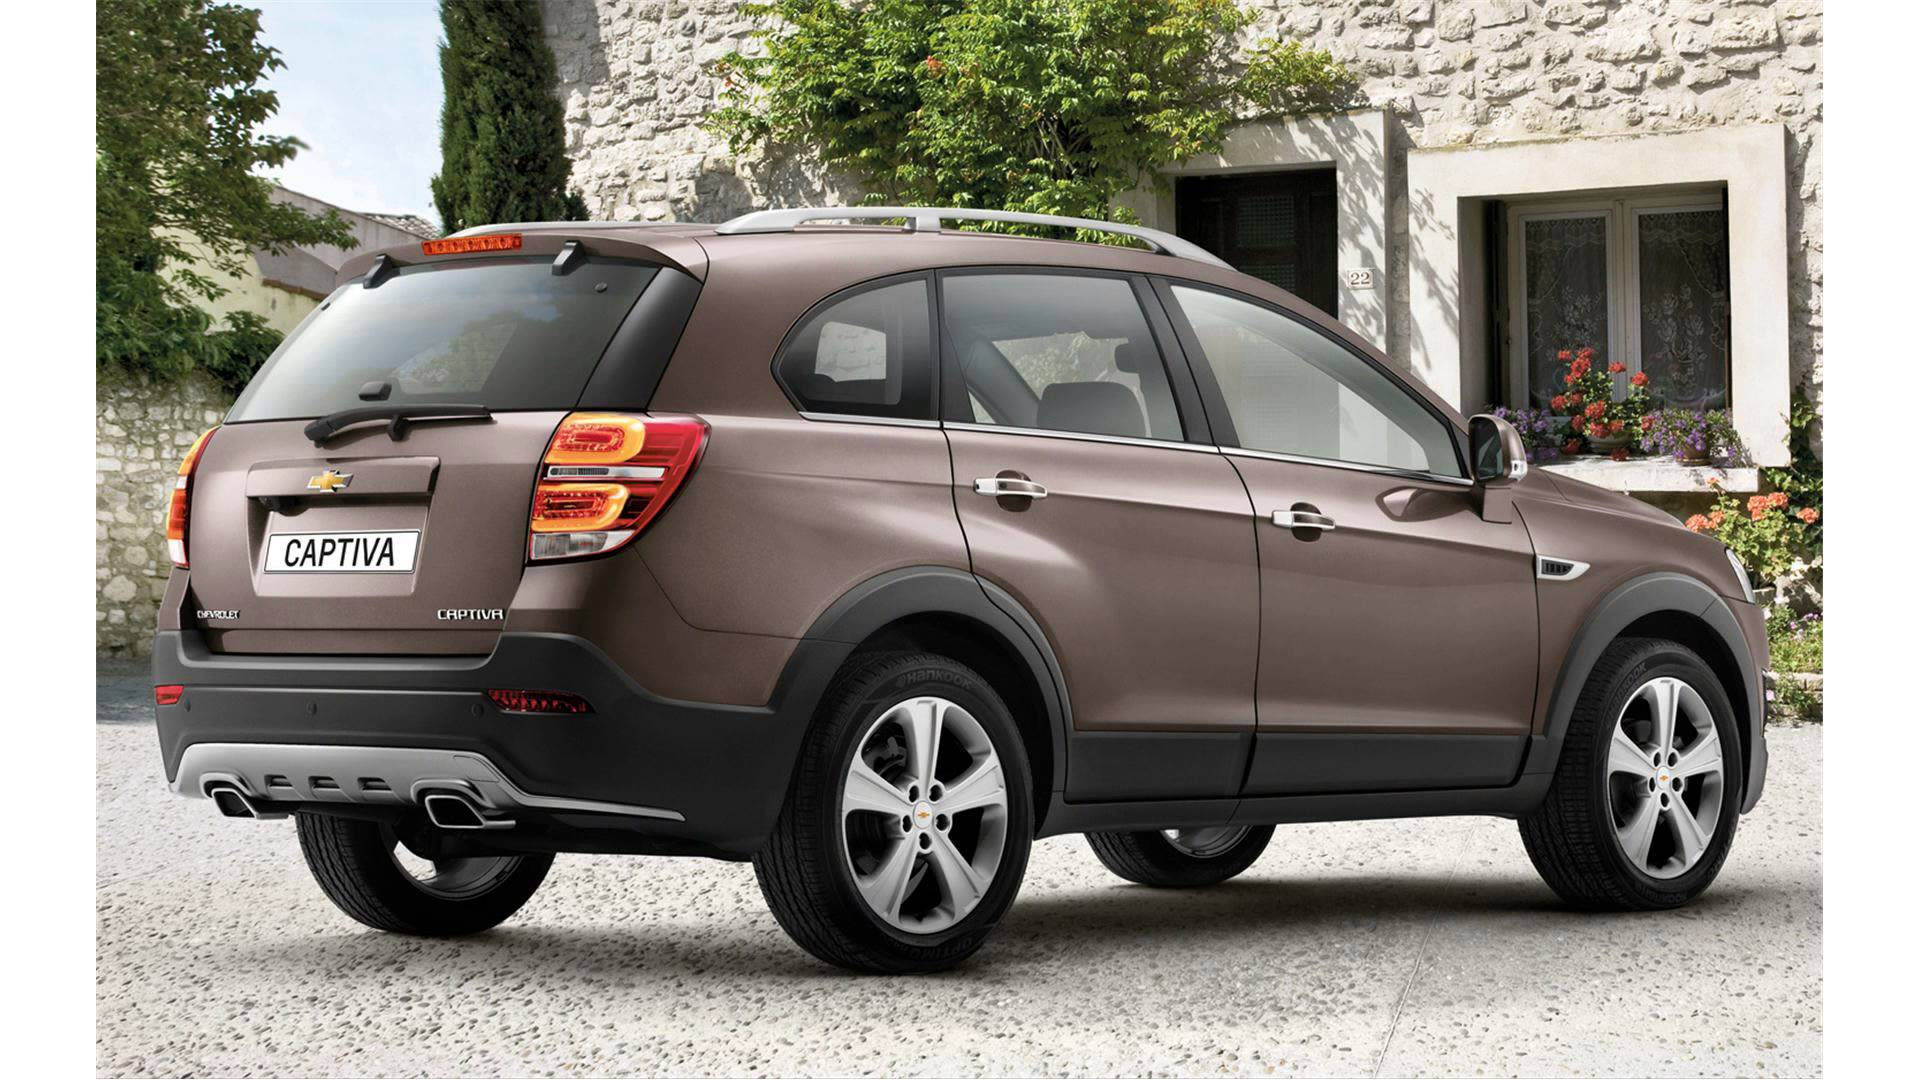 Cars chevrolet captiva 2015 #7